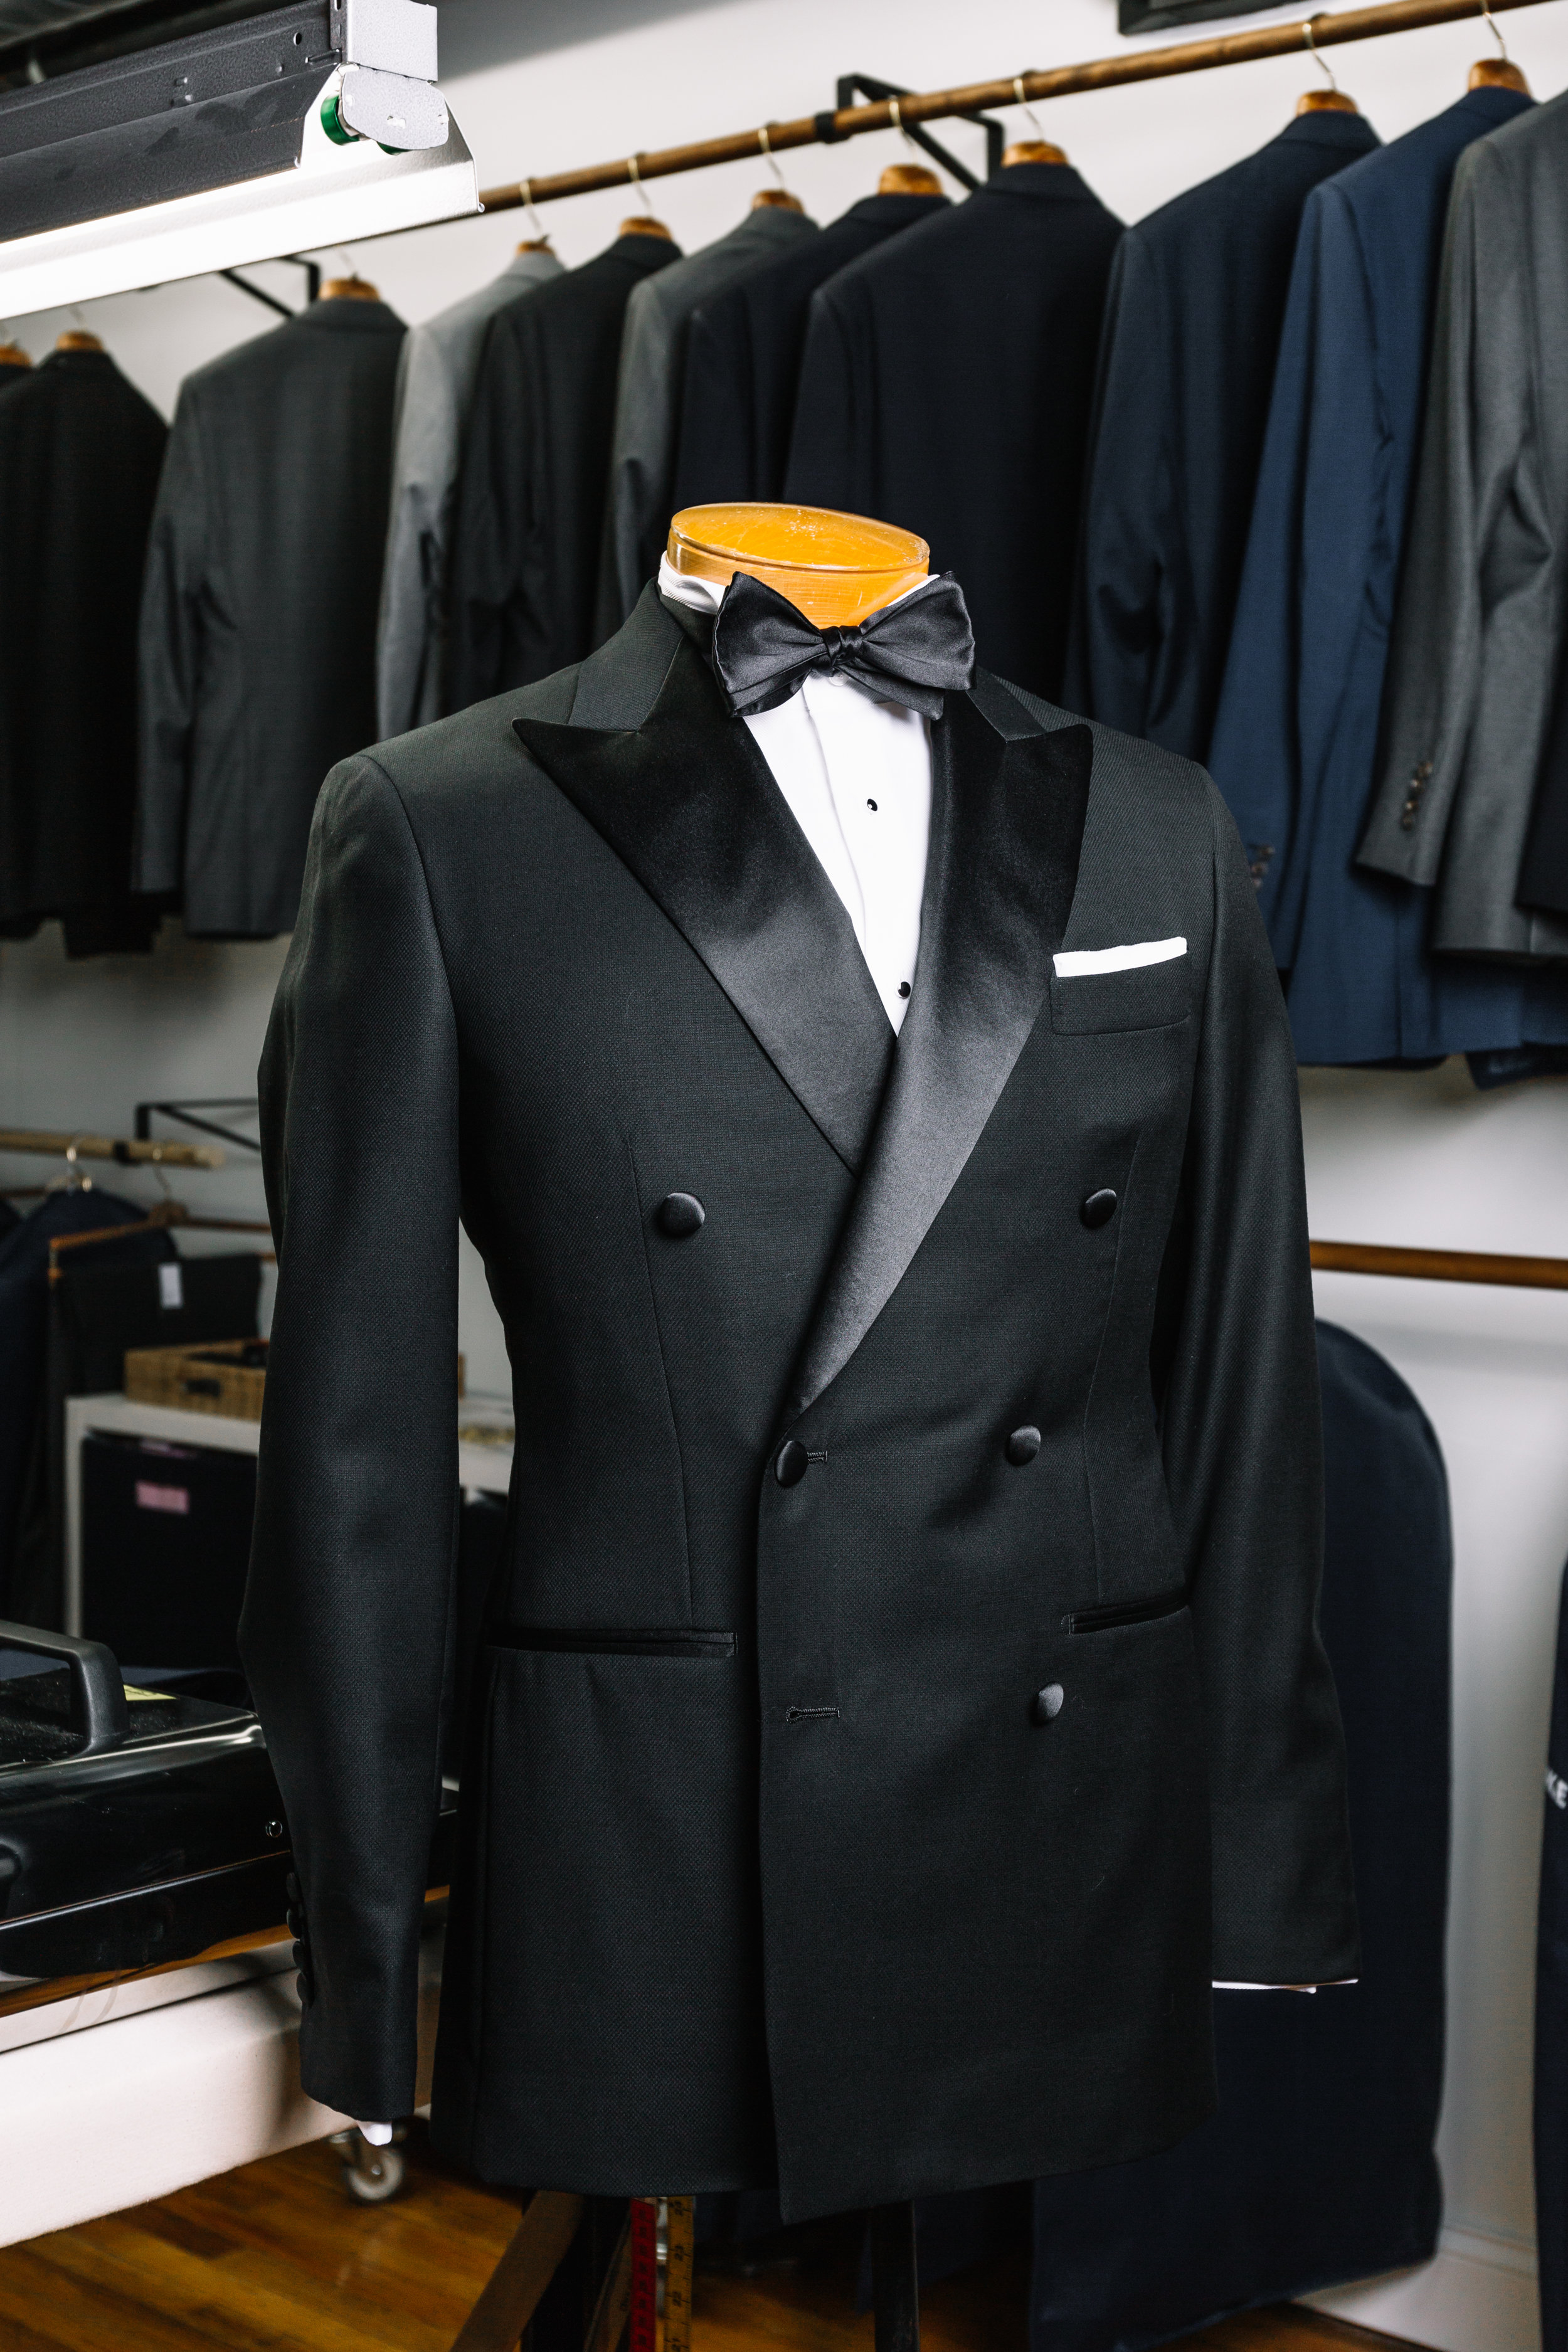 Tuxedo fabrics are usually woven with white yarns, as well as silk, to give a sheen effect.